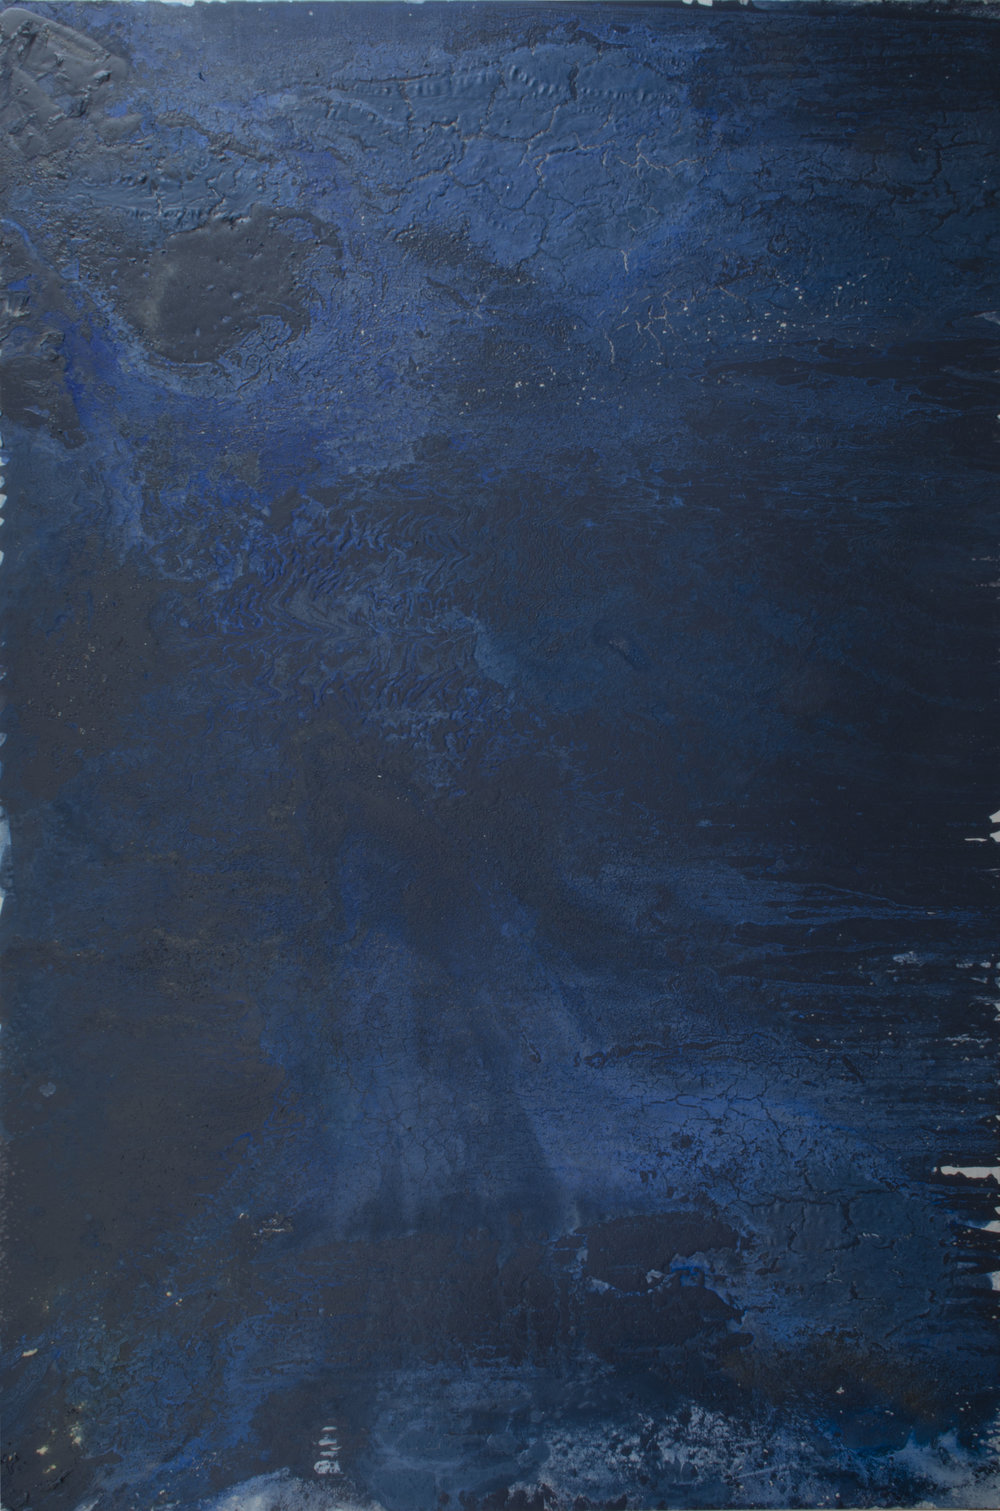 Evening Sacrifice, 2014, 72 x 48 in.